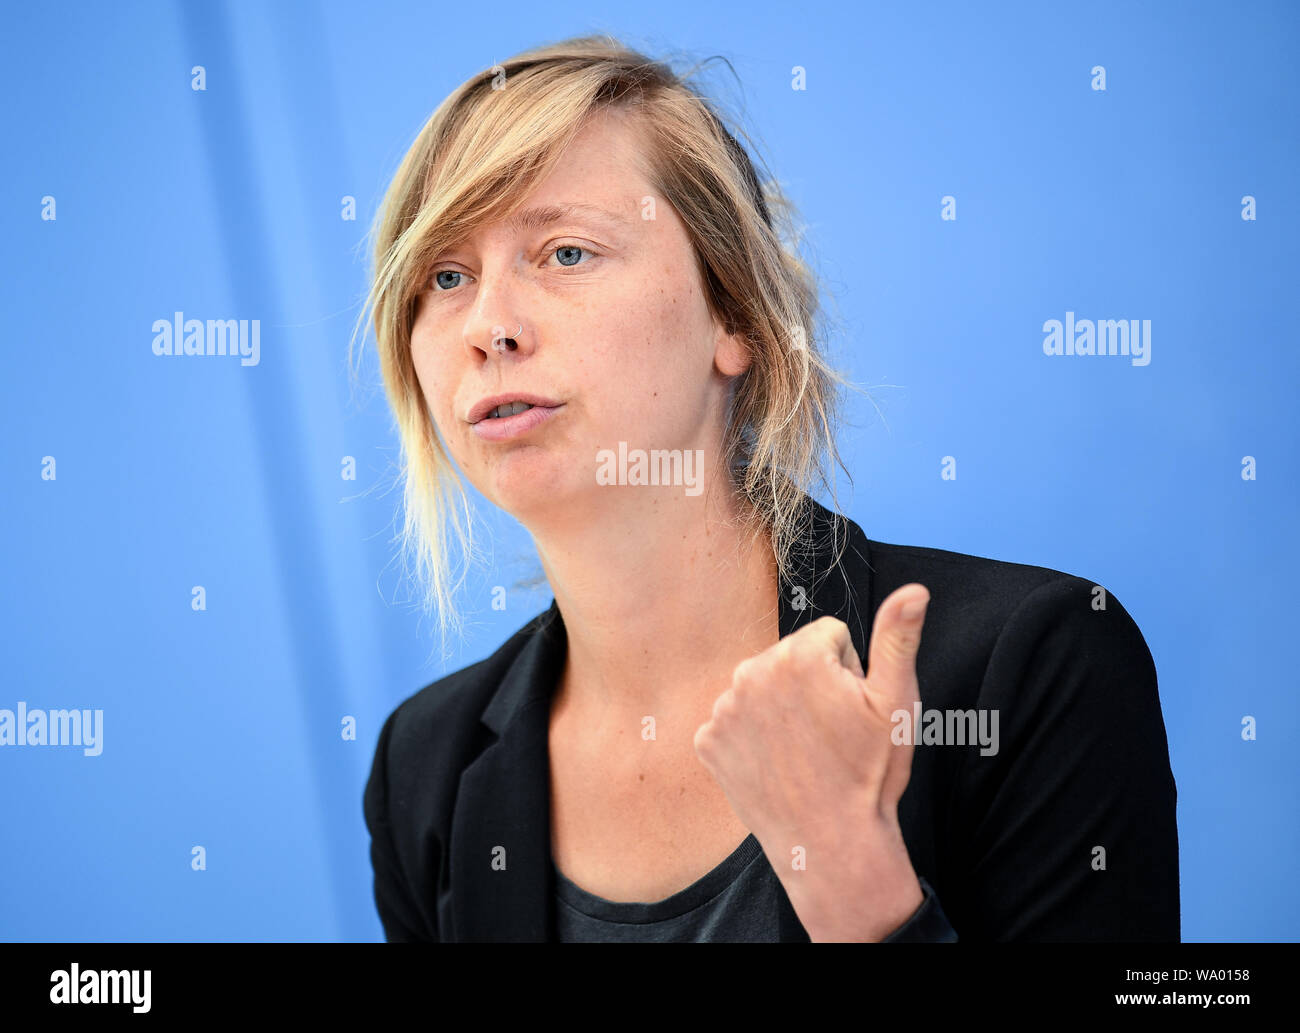 Berlin, Germany. 16th Aug, 2019. Luise Neumann-Cosel, Campact team leader, speaks at a press conference on the urgency of immediate action on climate change. Credit: Britta Pedersen/dpa-Zentralbild/ZB/dpa/Alamy Live News Stock Photo